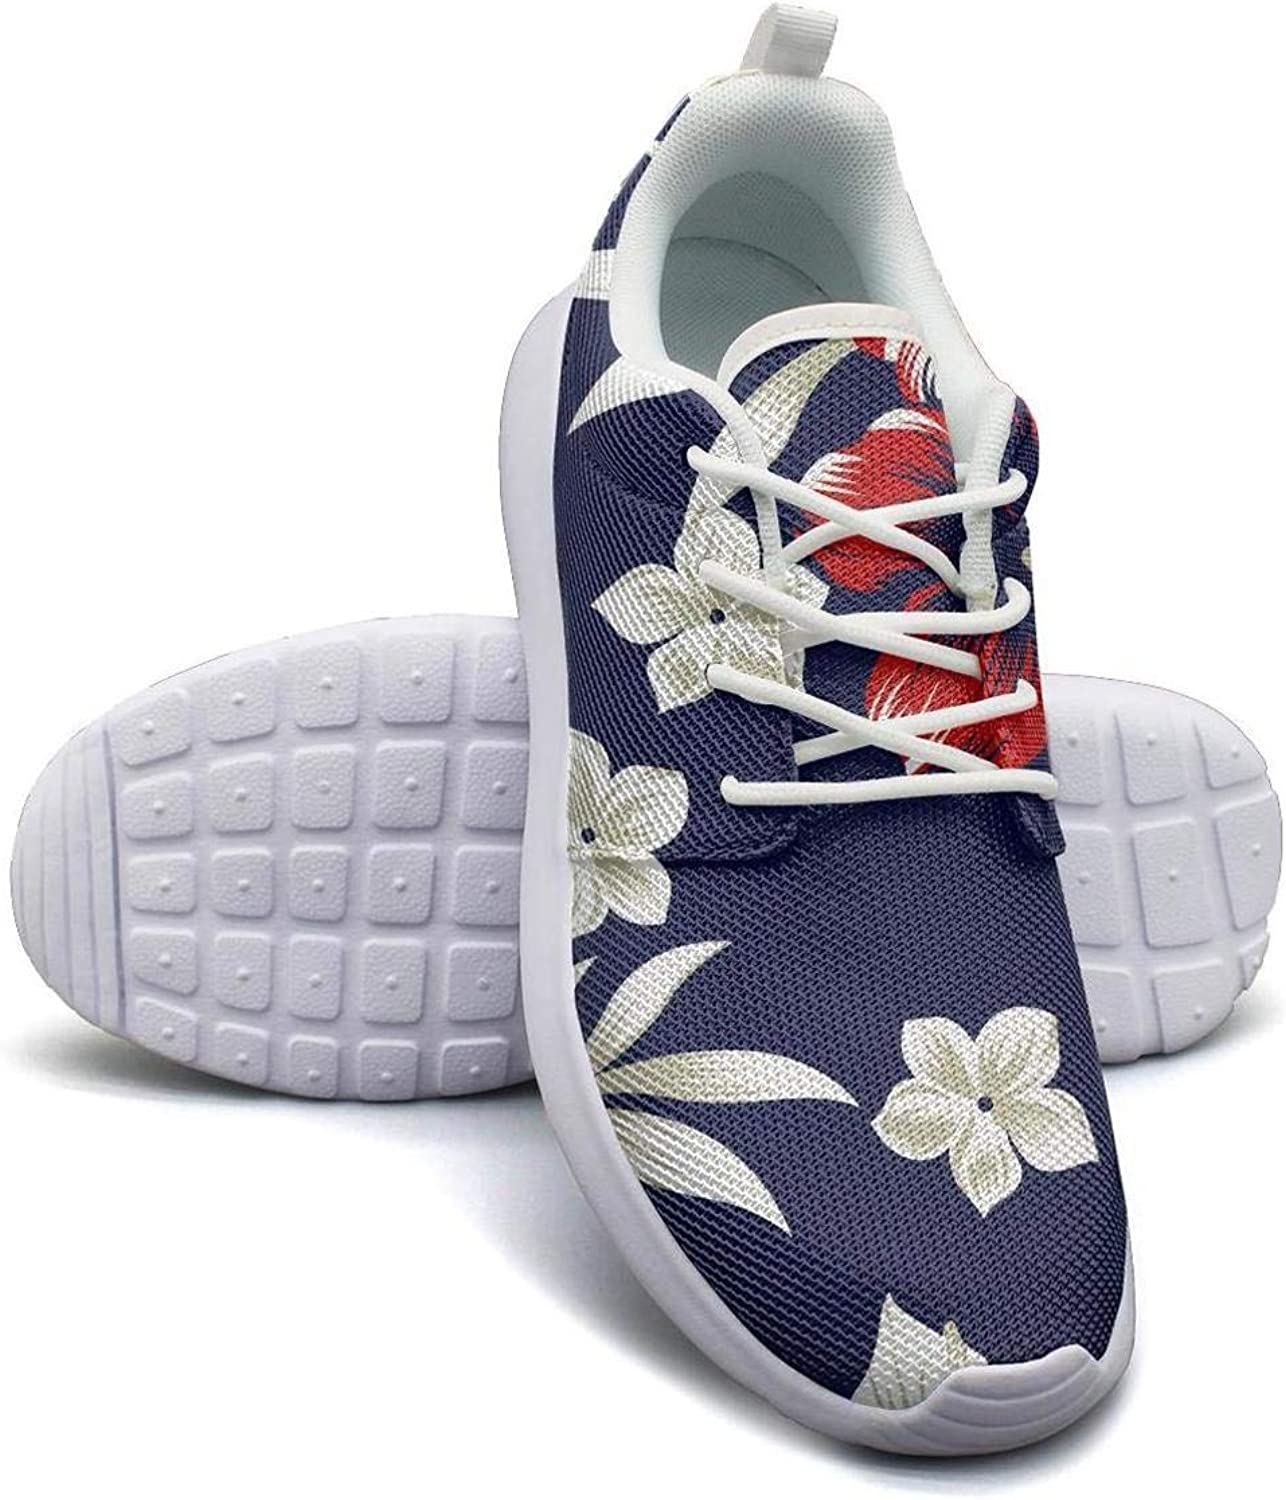 CHALi99 Lady Lightweight Mesh shoes Tropical Floral Hawaiian Design Botanica Sneakers Running Shock Absorbing